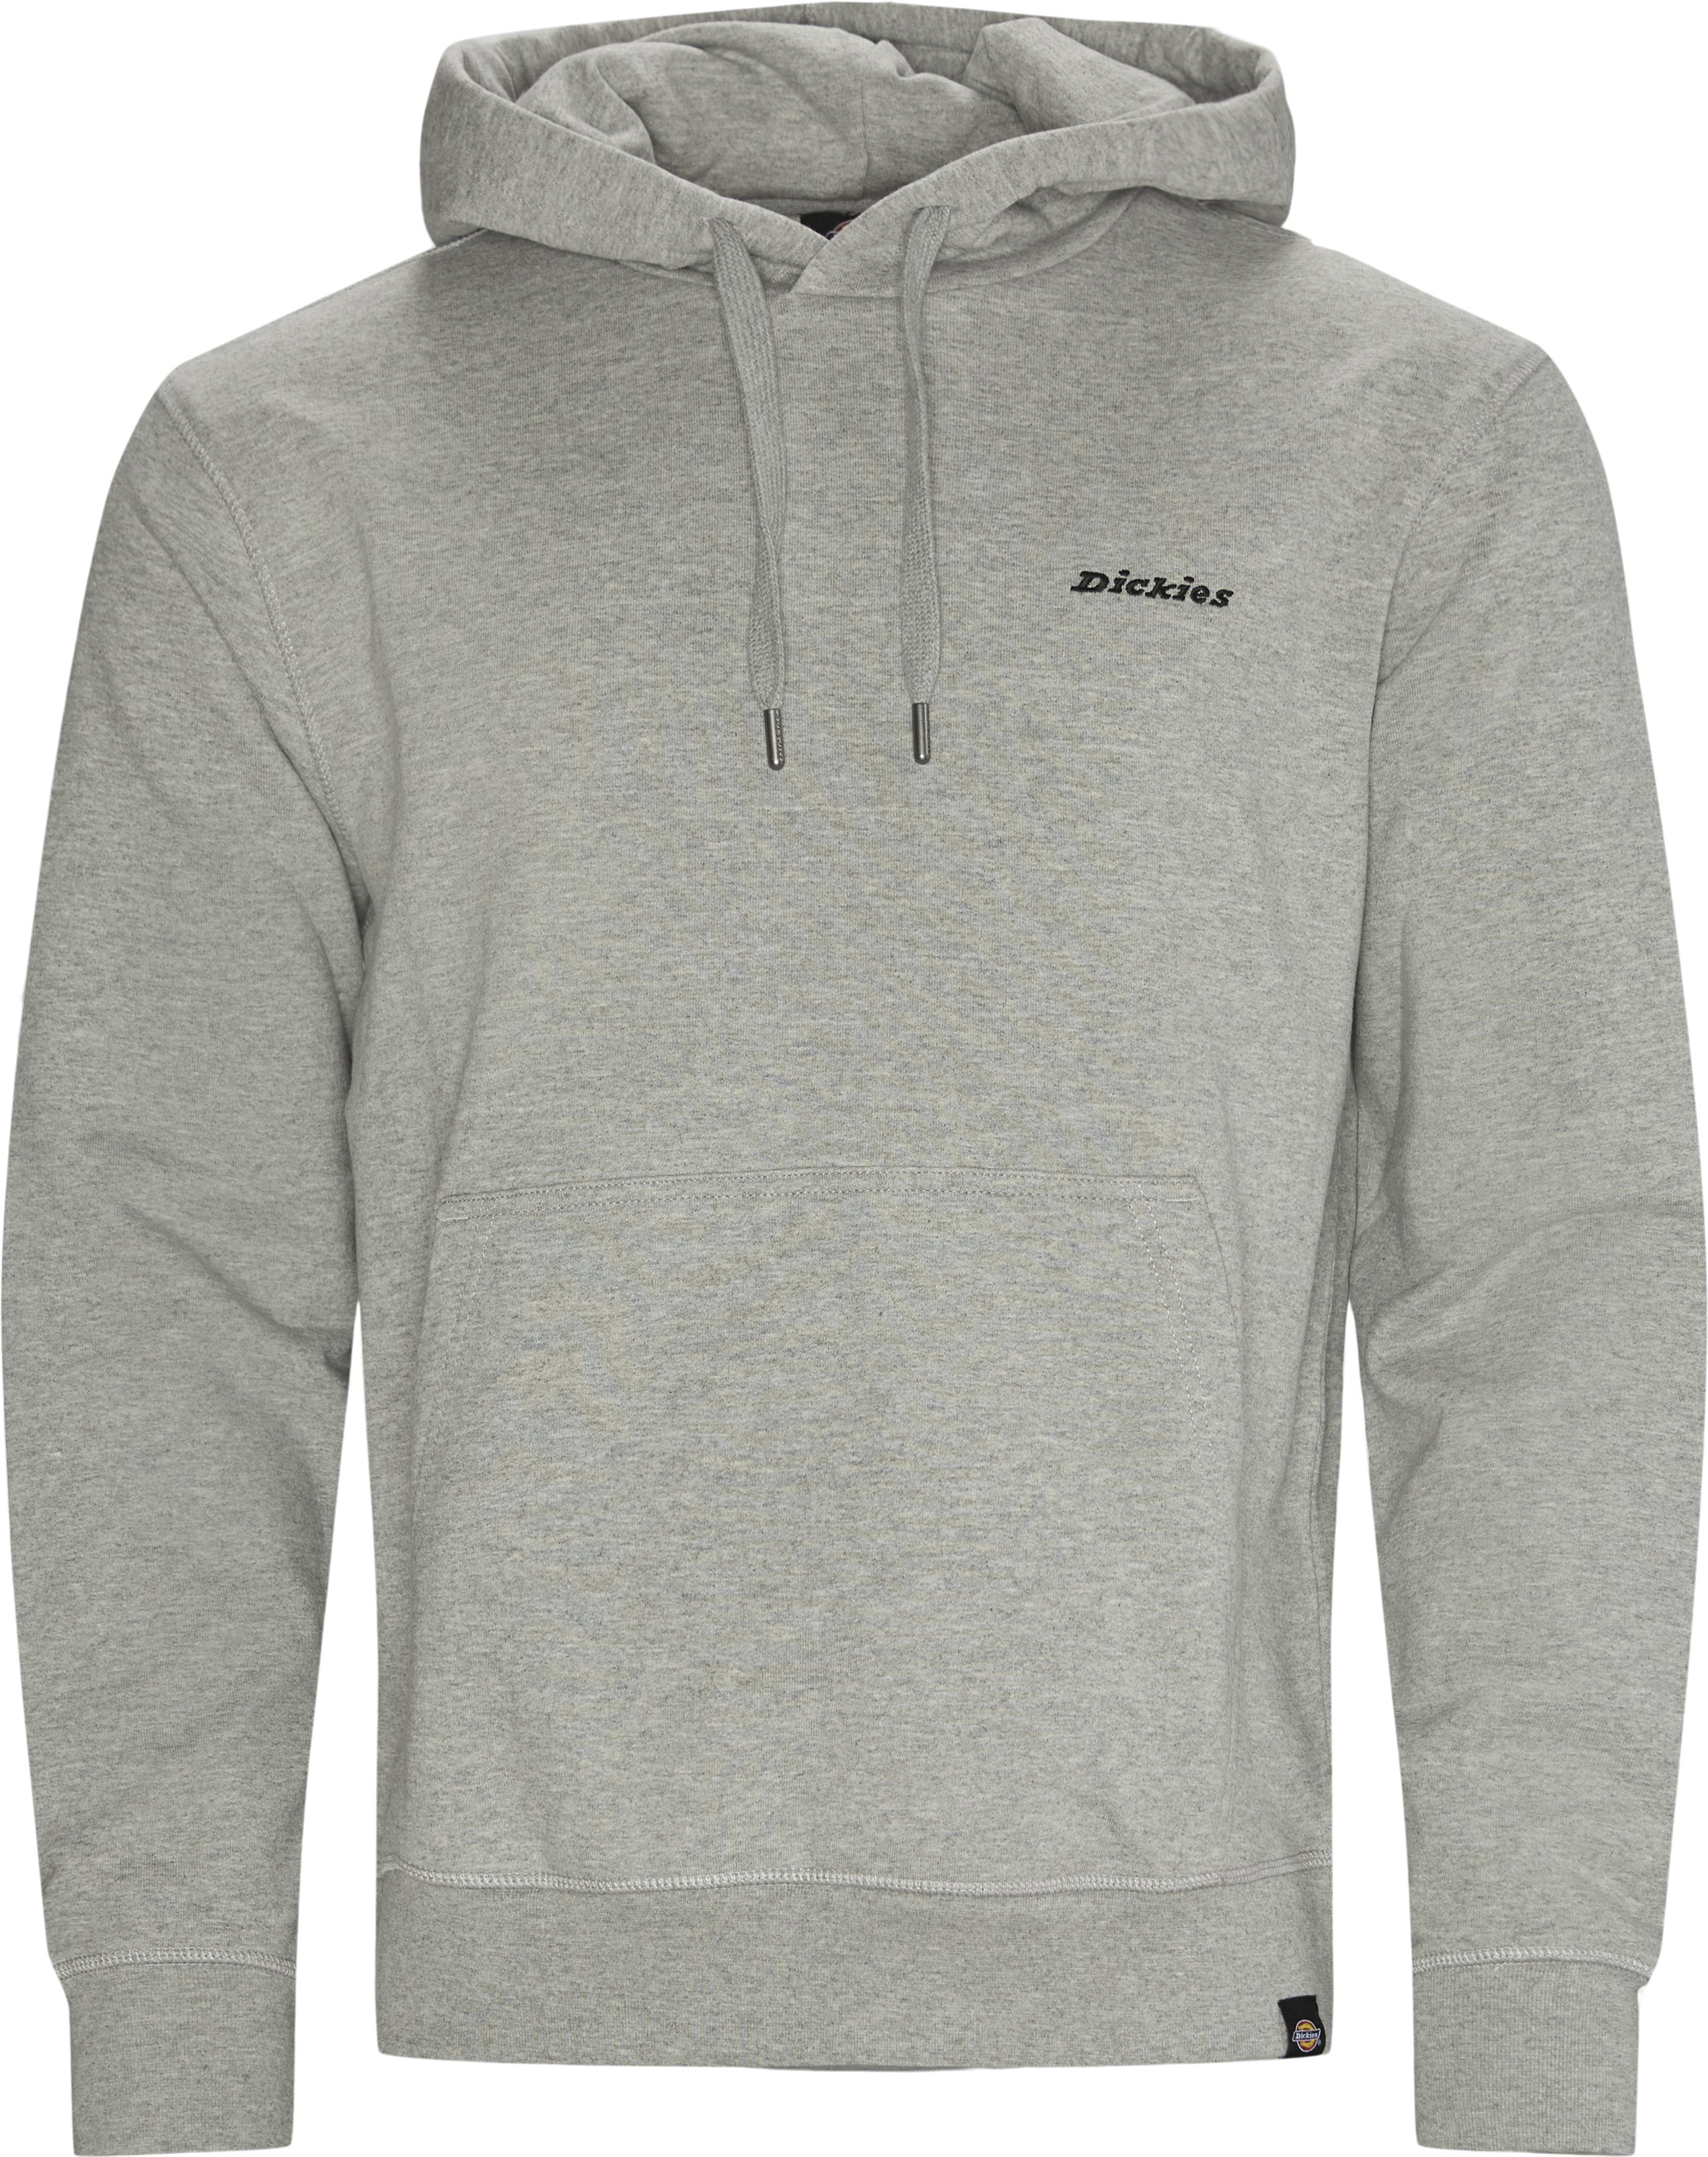 Loretto Hoodie - Sweatshirts - Regular fit - Grå